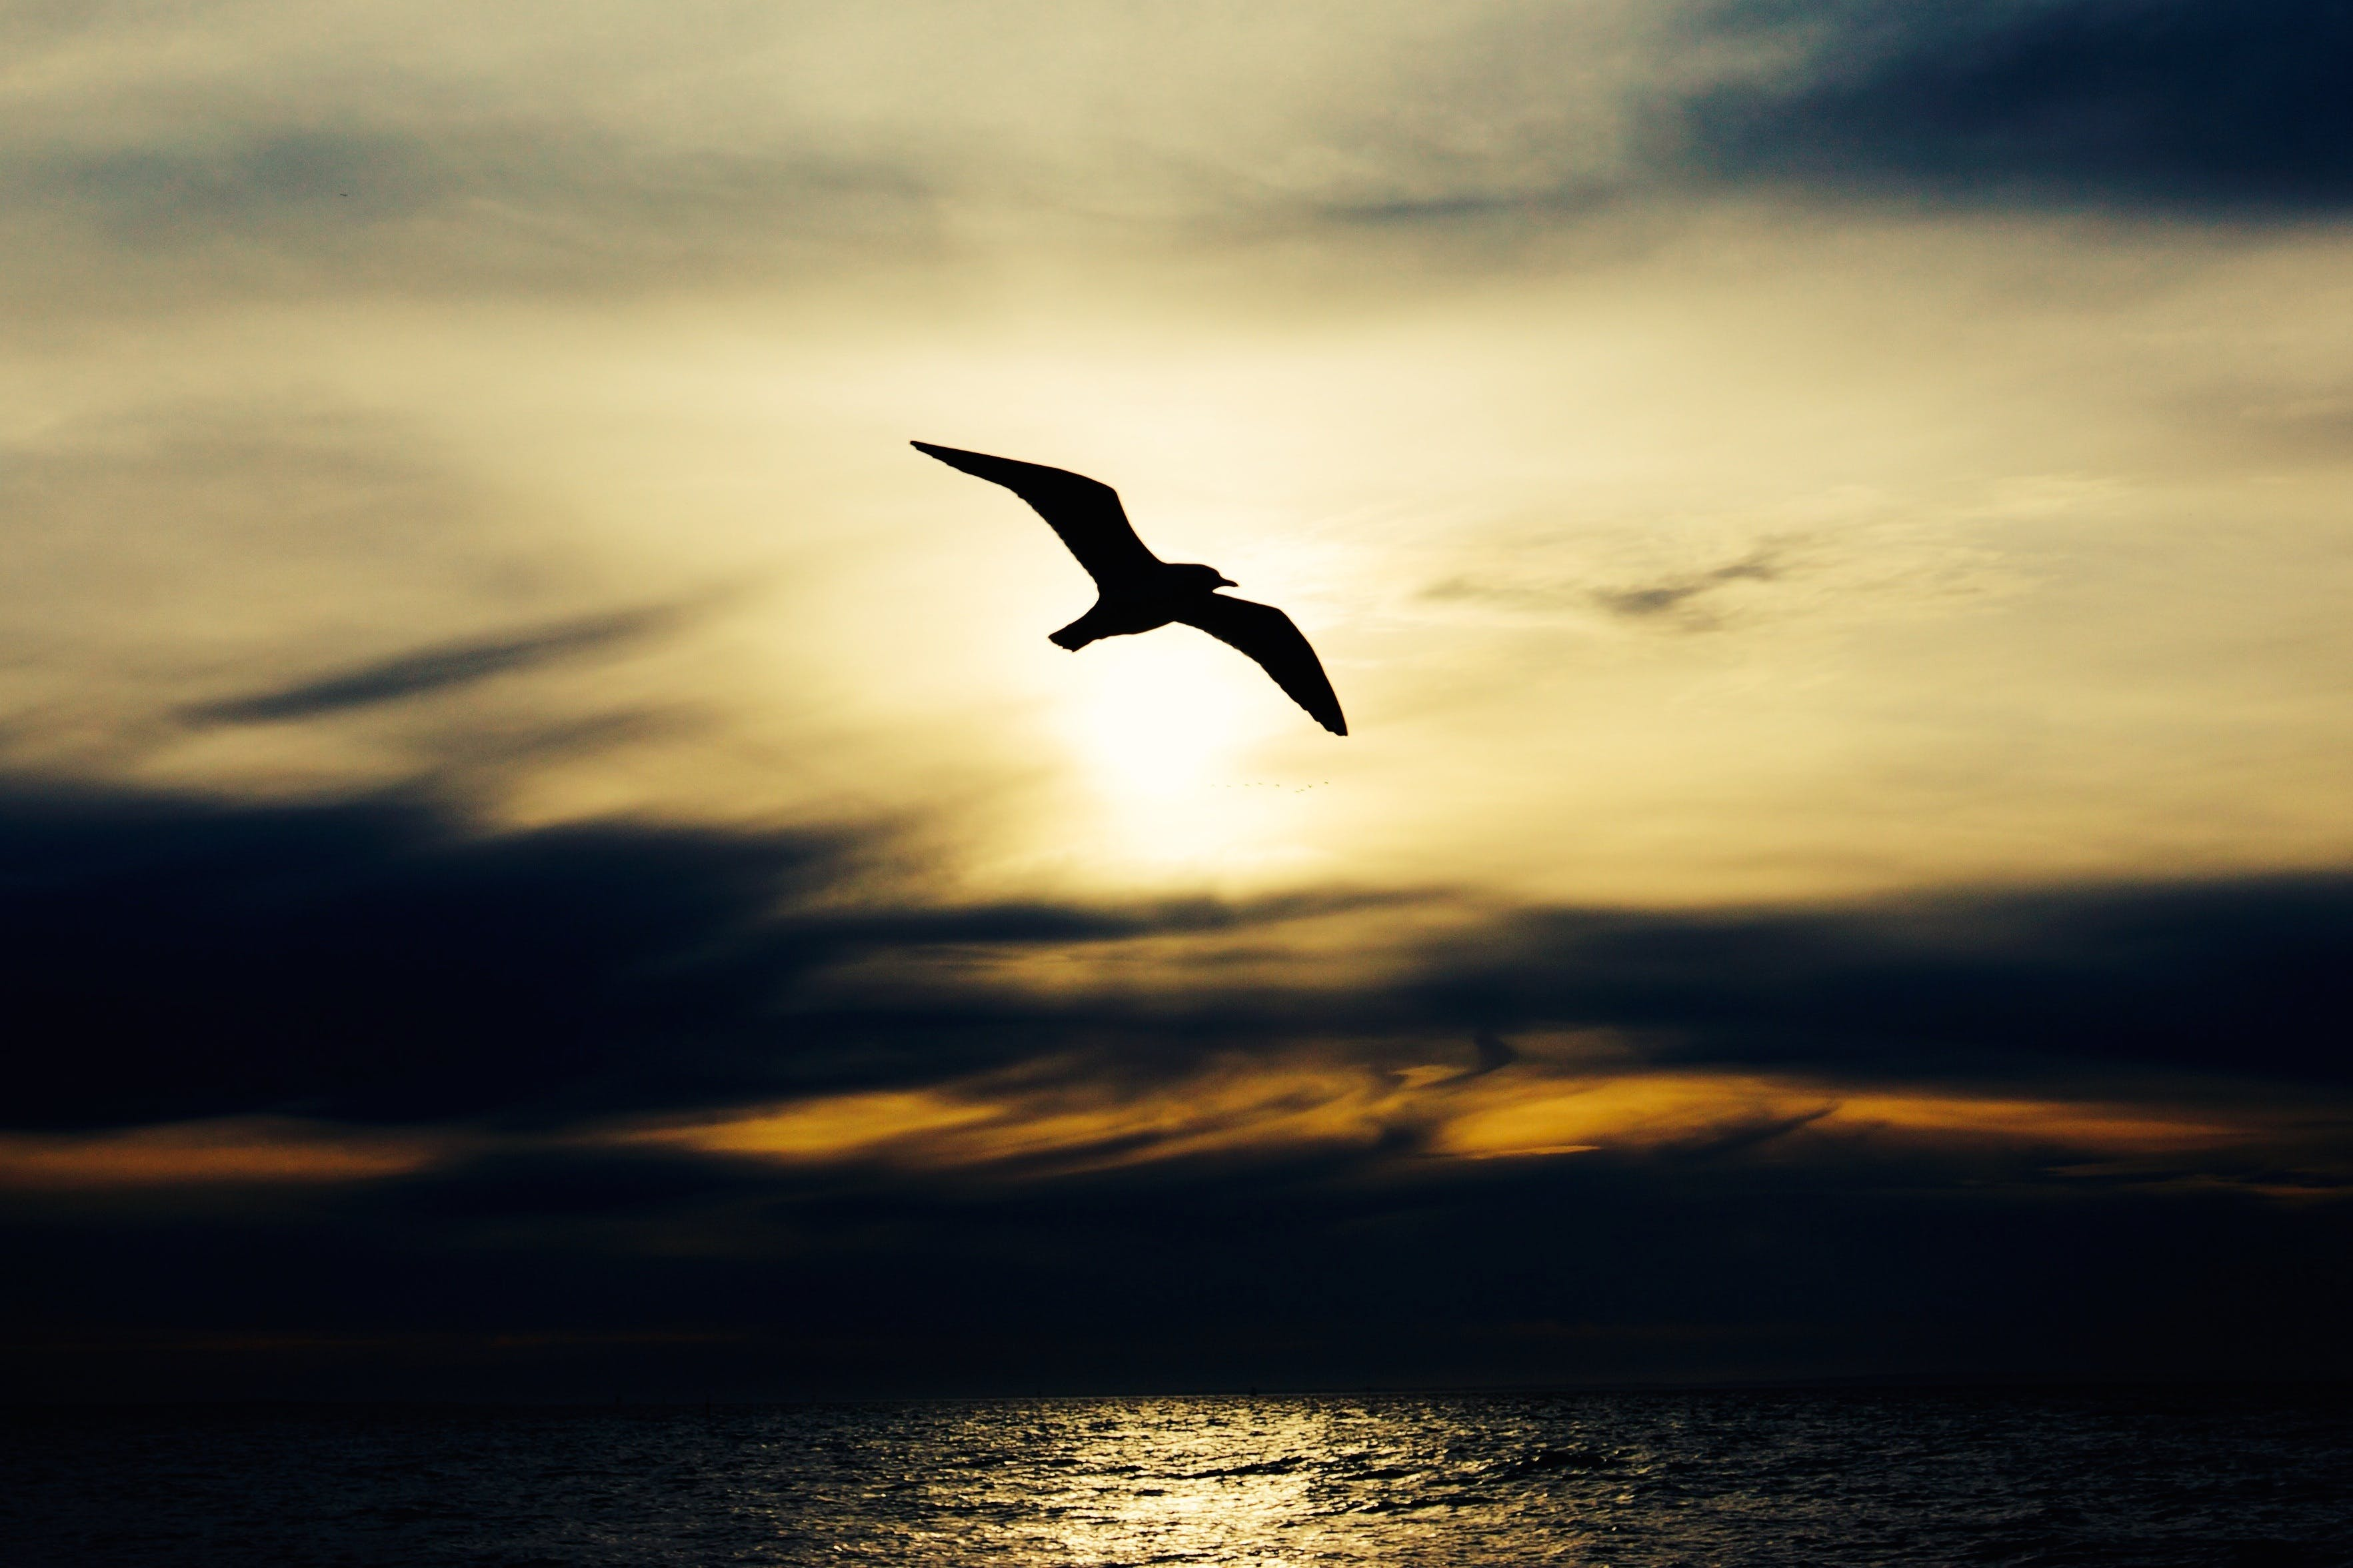 Free stock photo of sea, flight, nature, sunset